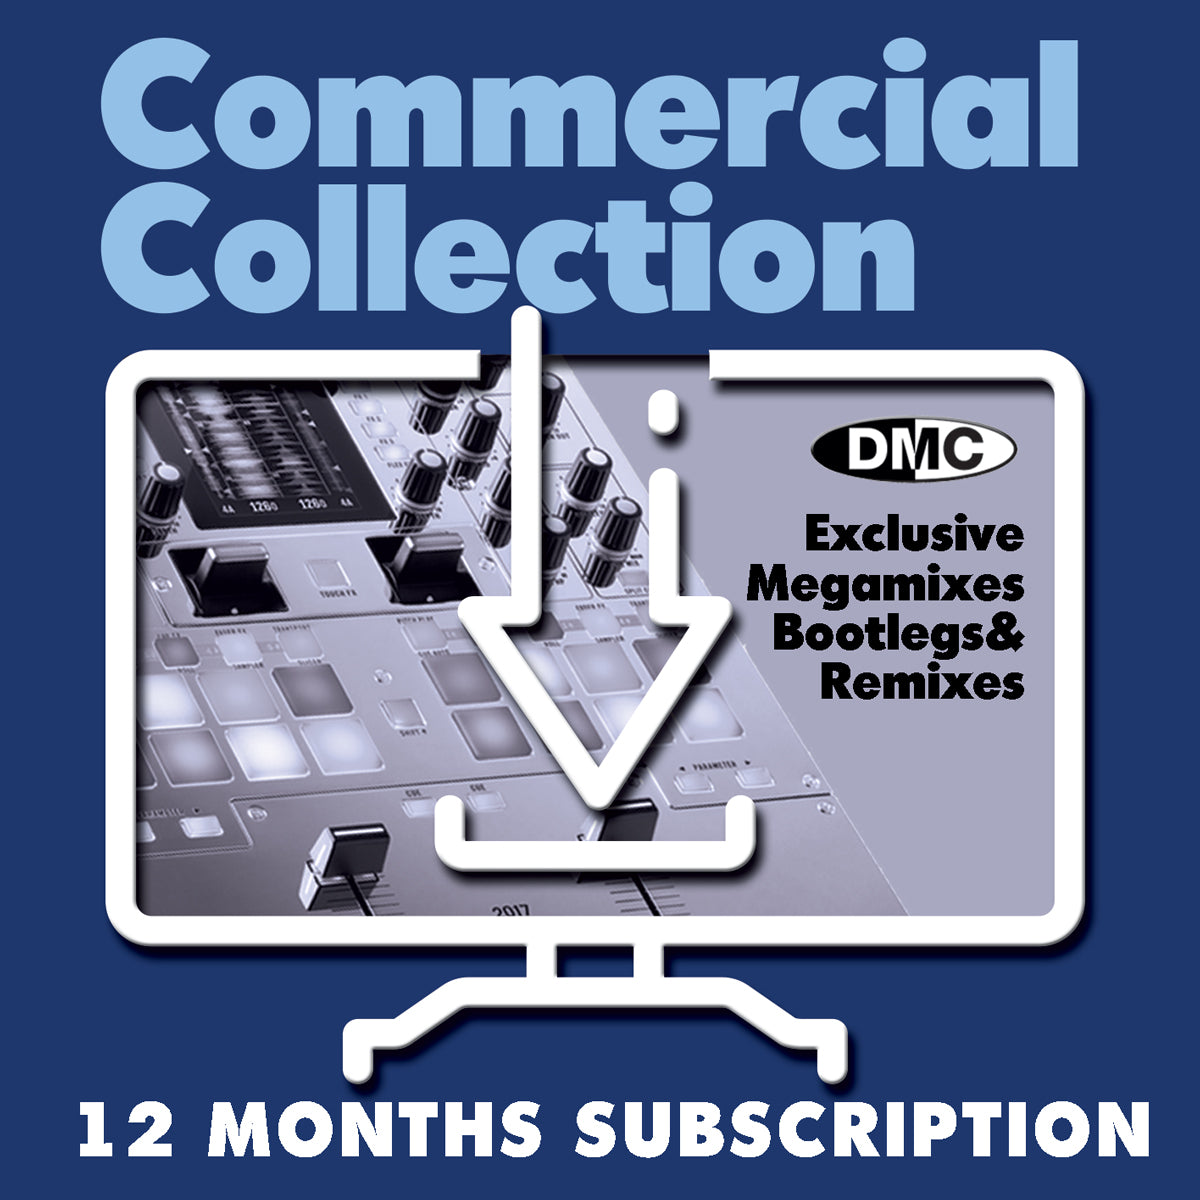 DOWNLOAD ONLY - DMC COMMERCIAL COLLECTION - 12 MONTH'S SUBSCRIPTION